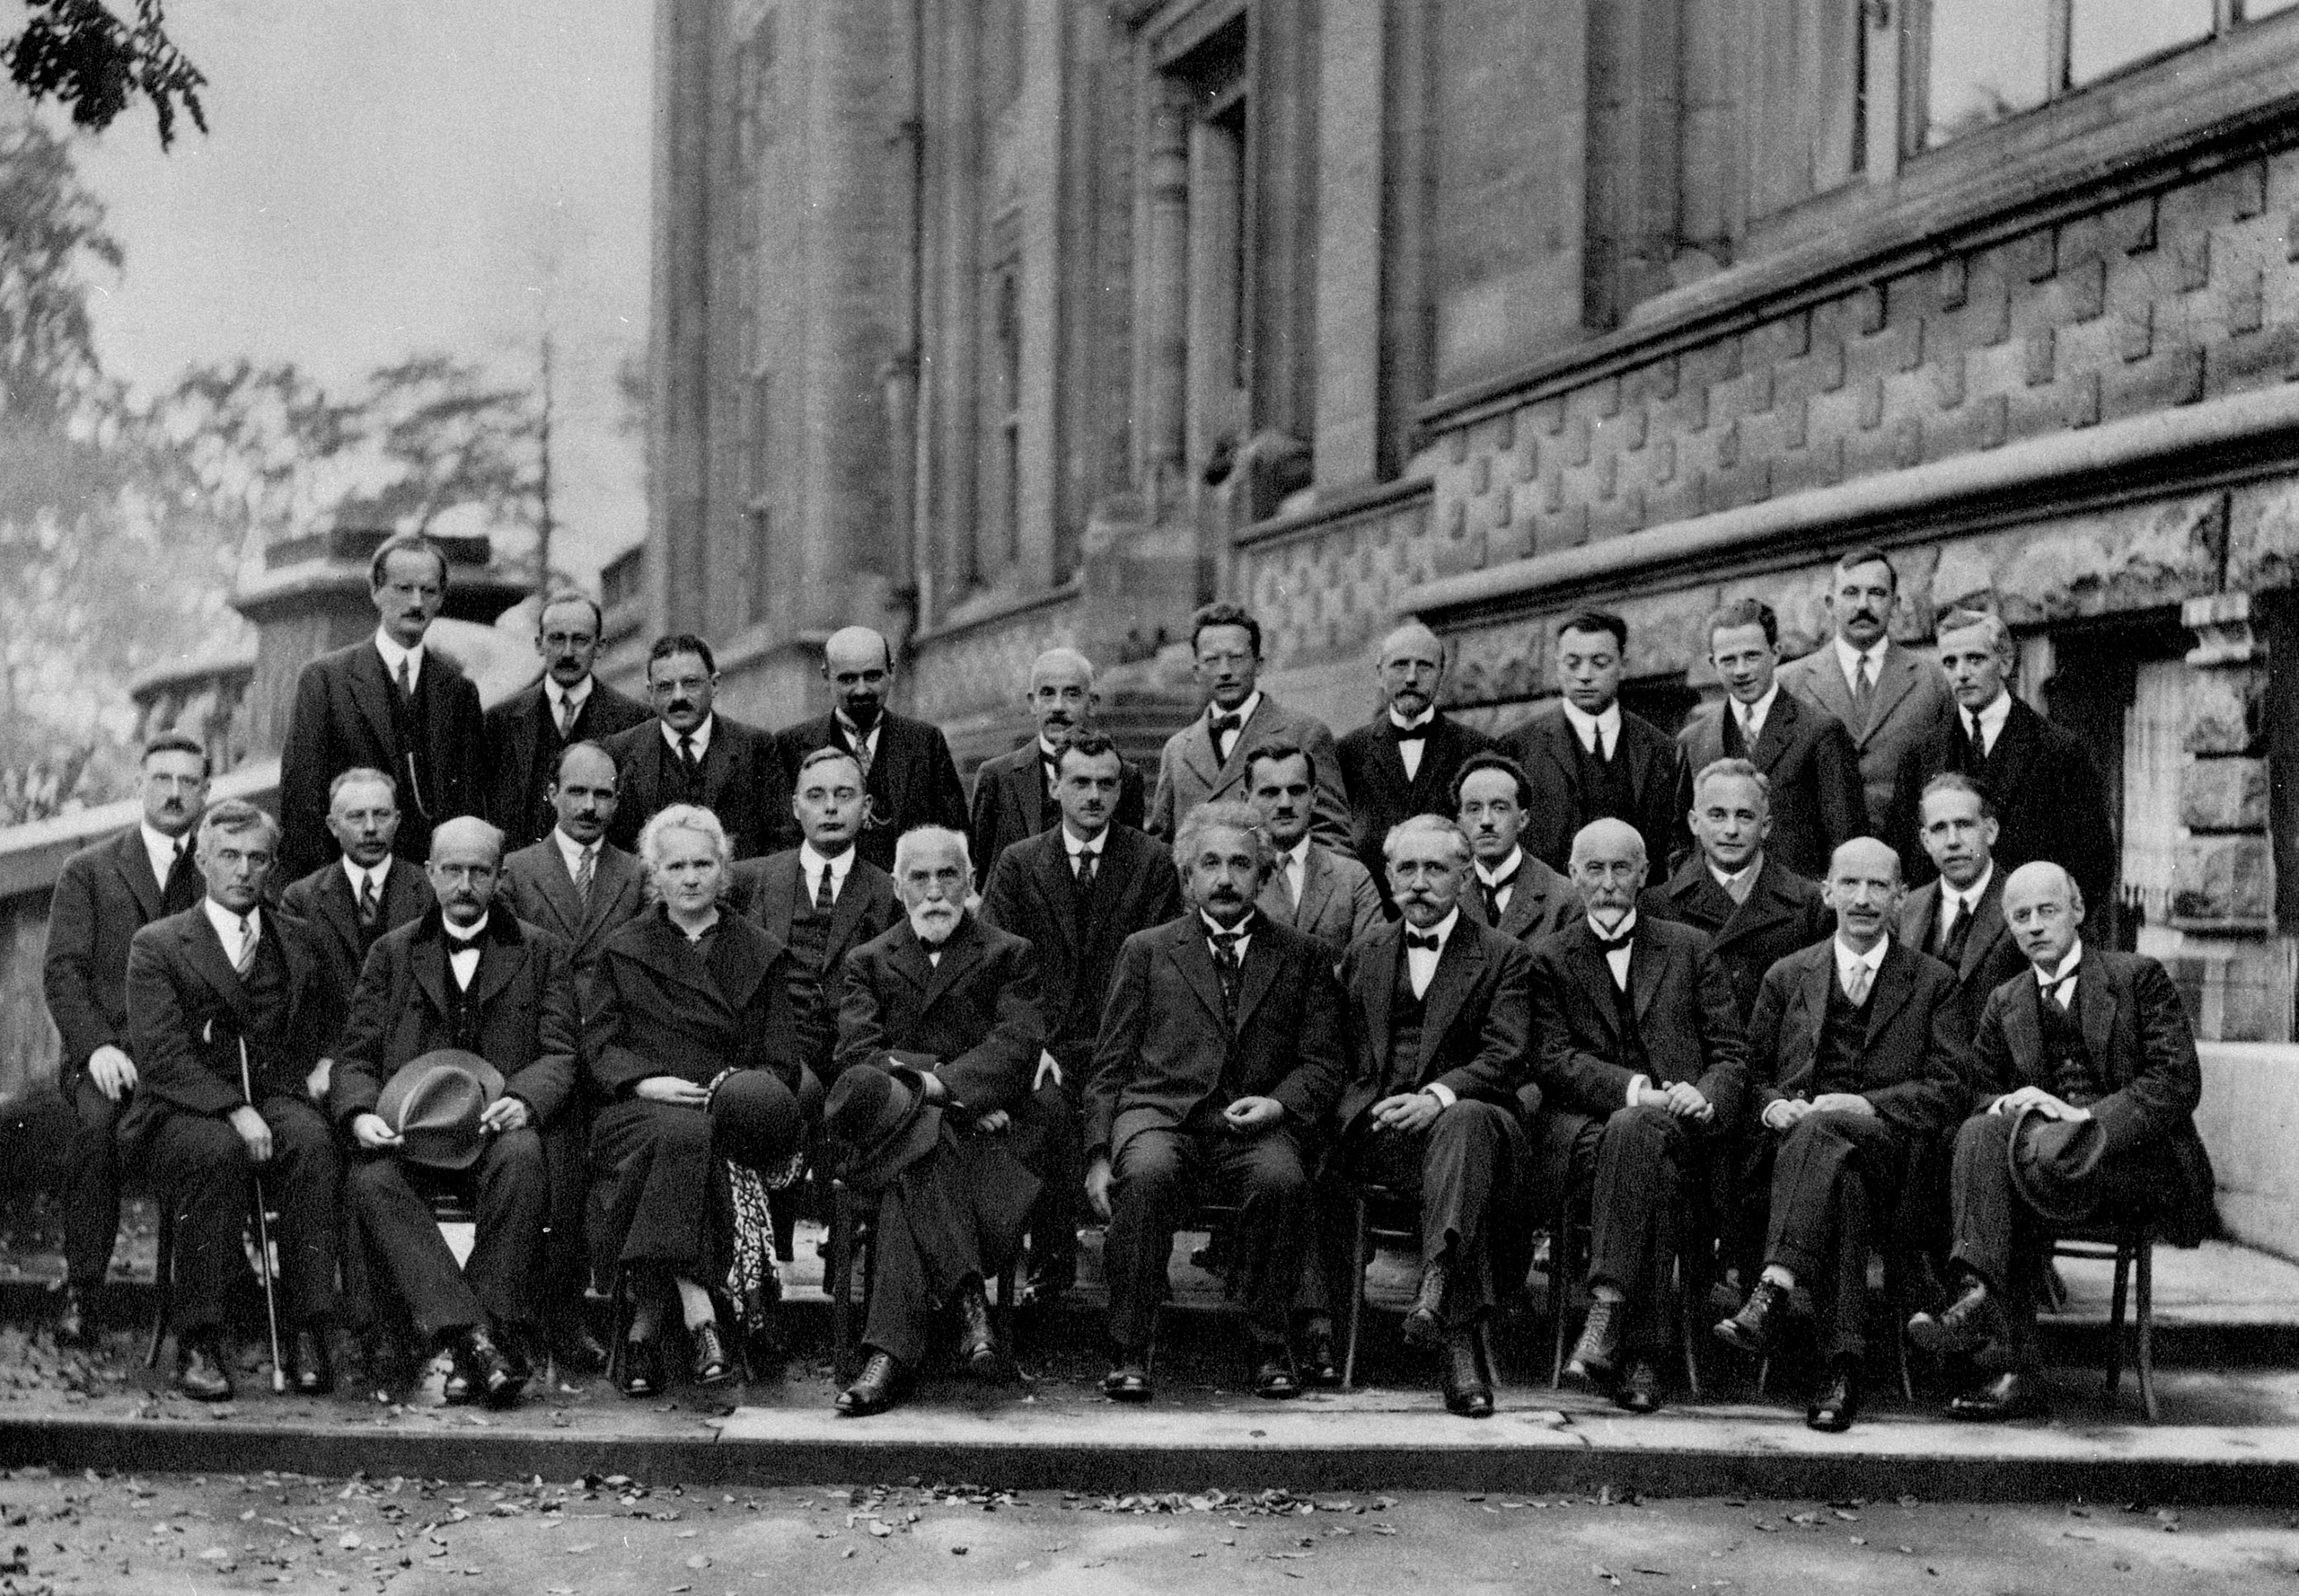 Solvay Physics Conference, Brussels, 1927.